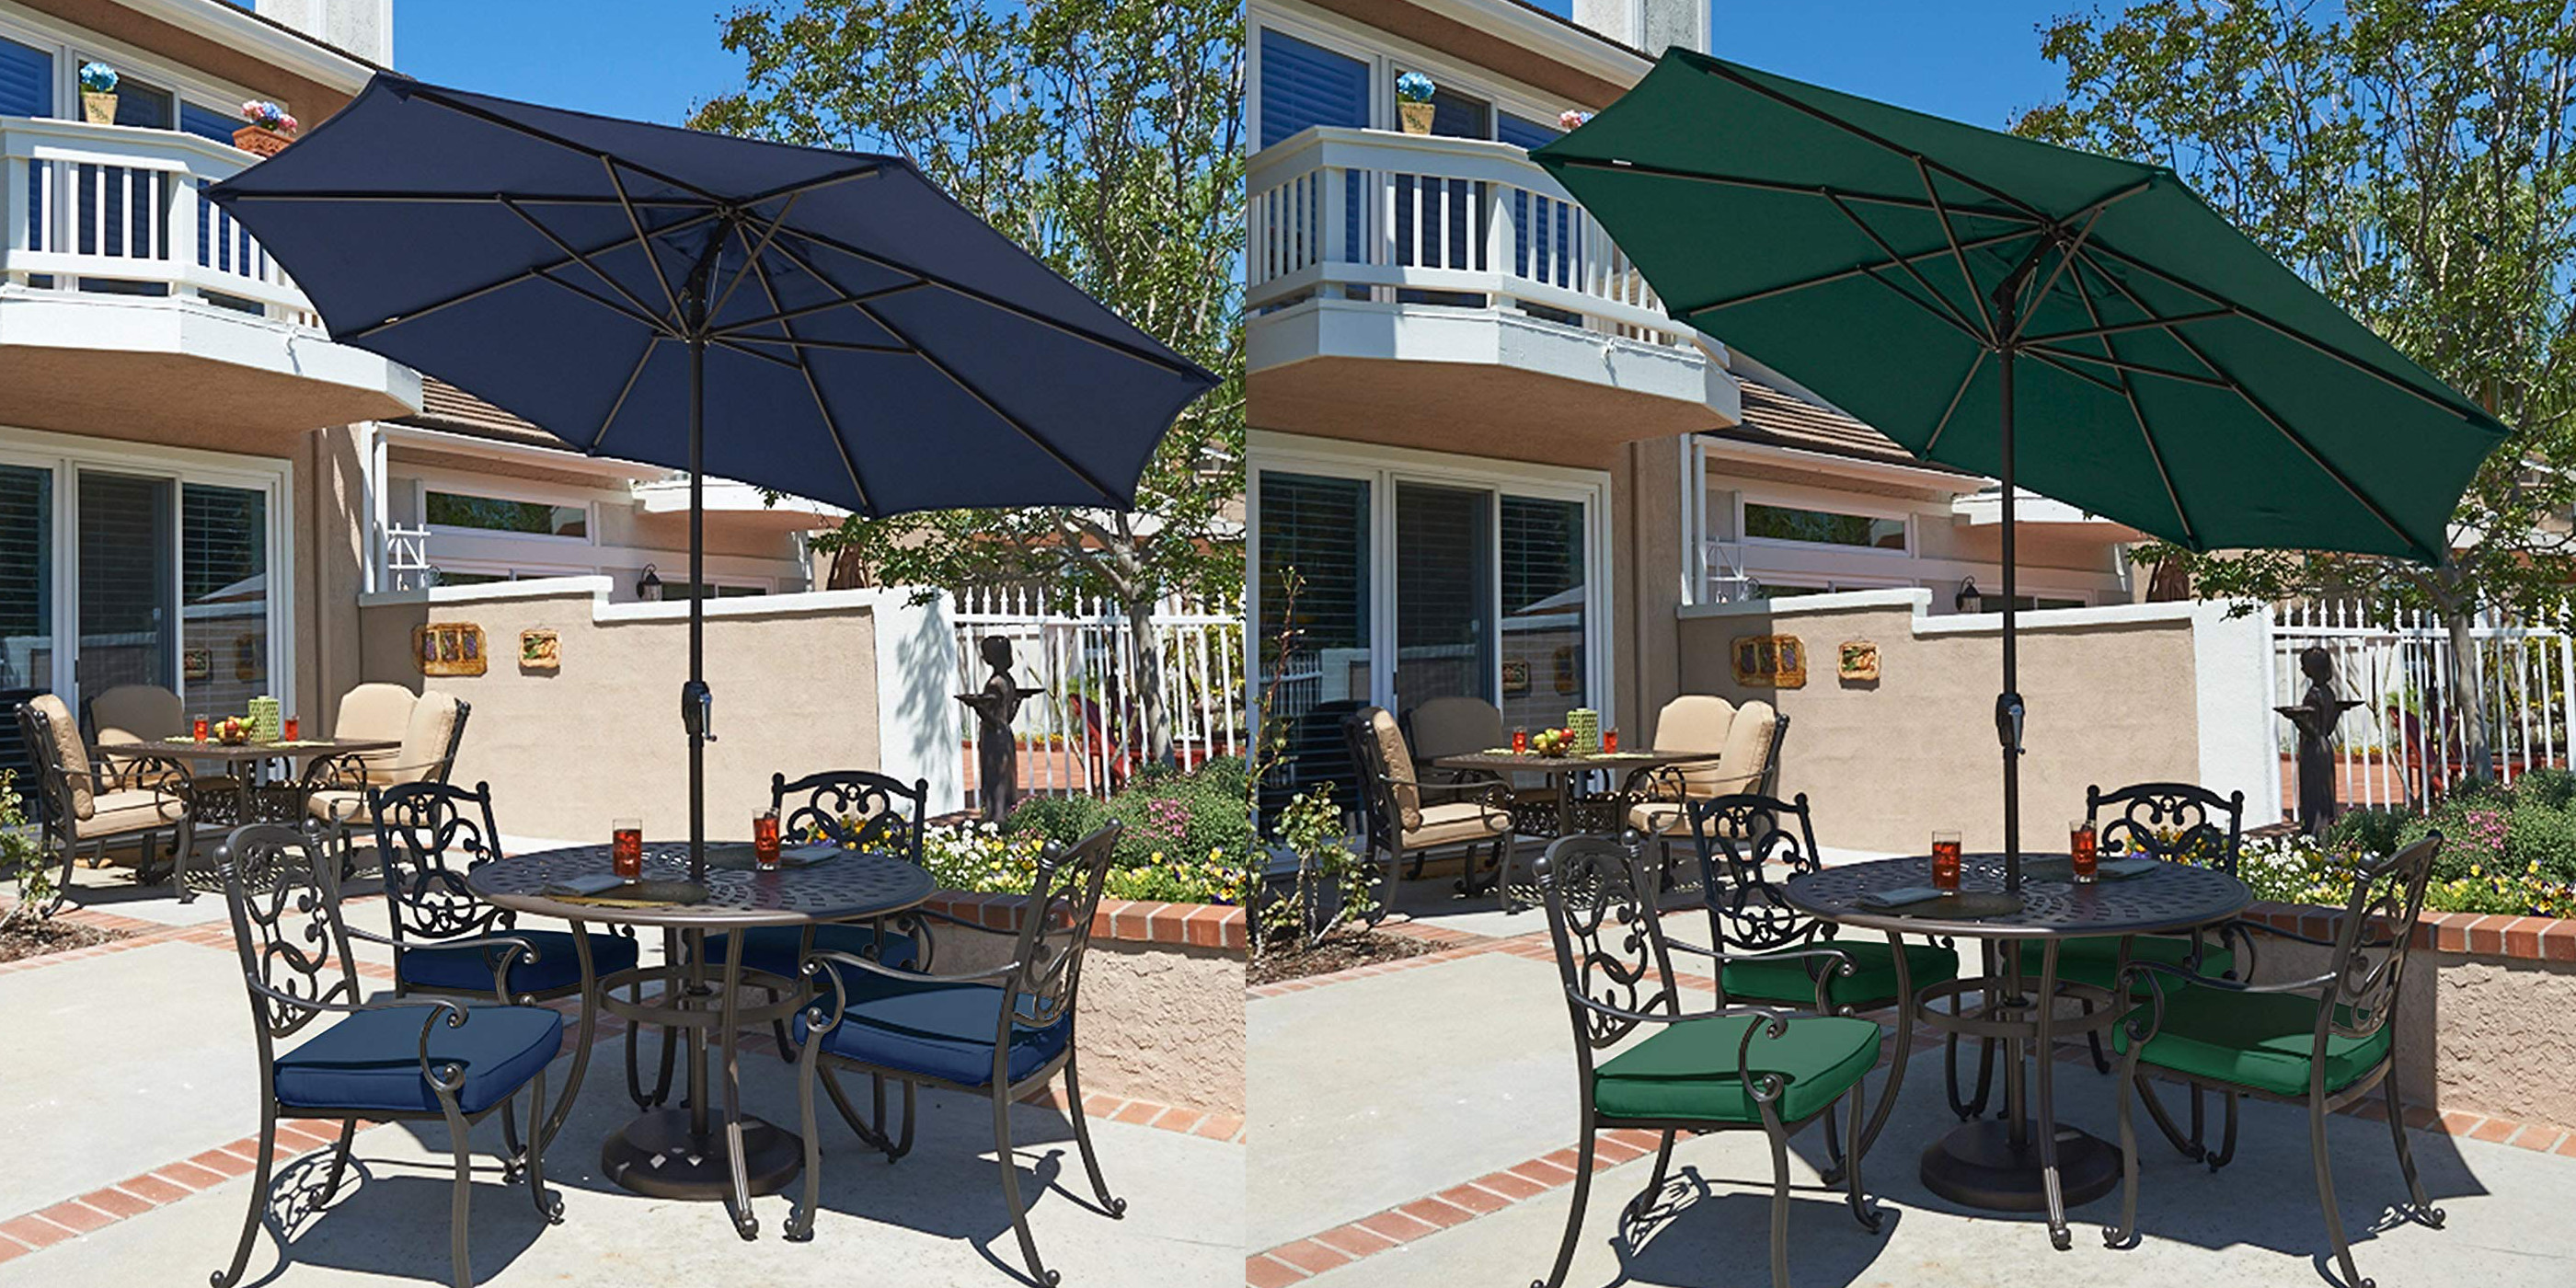 Get ready for spring/summer w/ these Aluminum Patio Umbrellas at $70 shipped (Reg. $100+) : aluminum patio umbrella - thejasonspencertrust.org